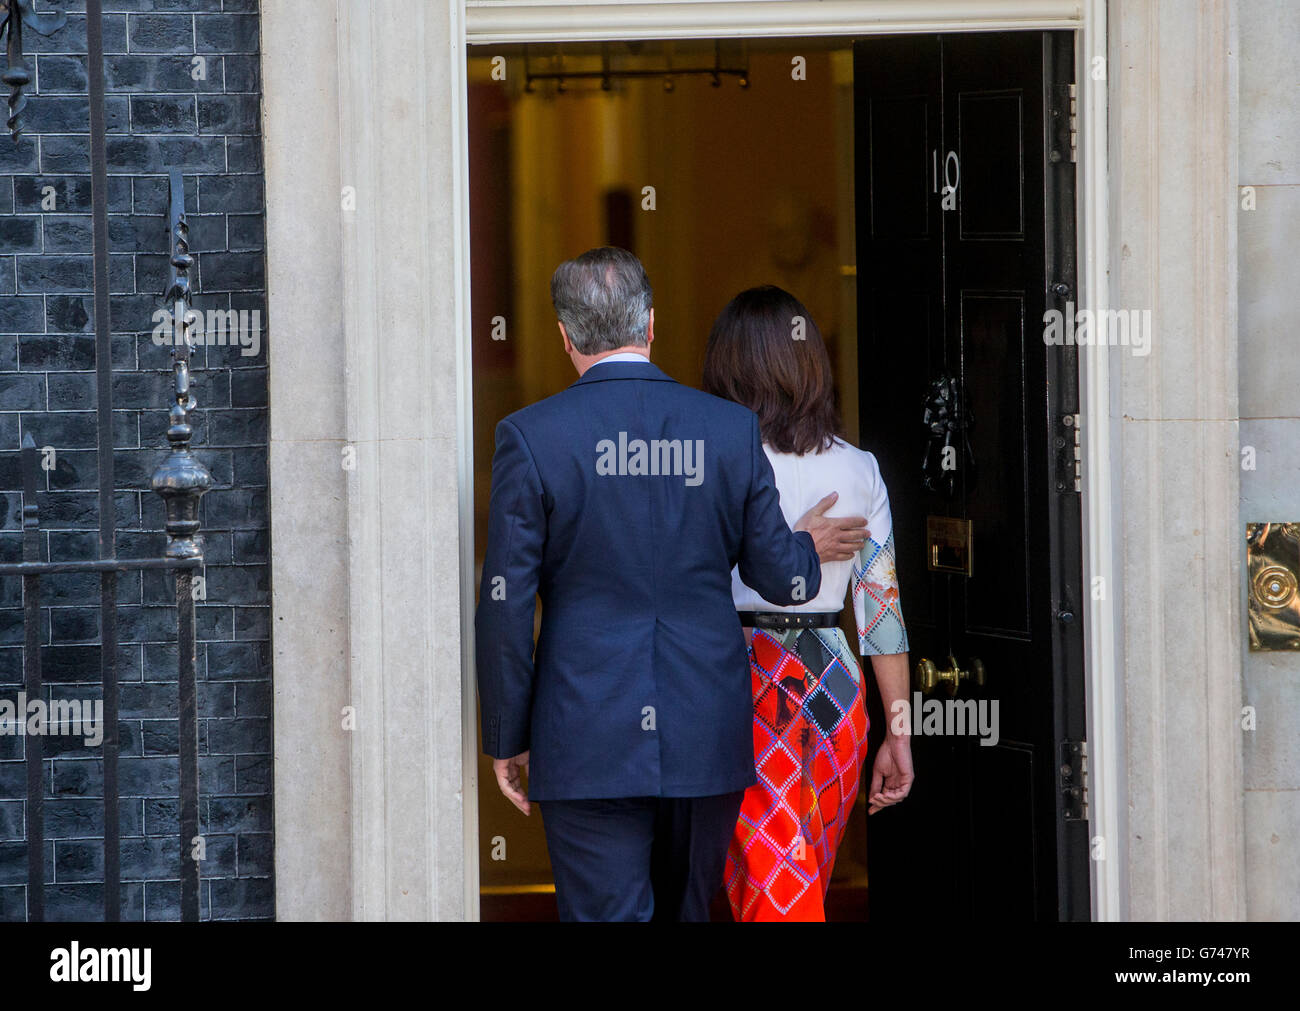 Prime Minister David Cameron with his wife Samantha,returns inside number 10 following his resignation speech - Stock Image